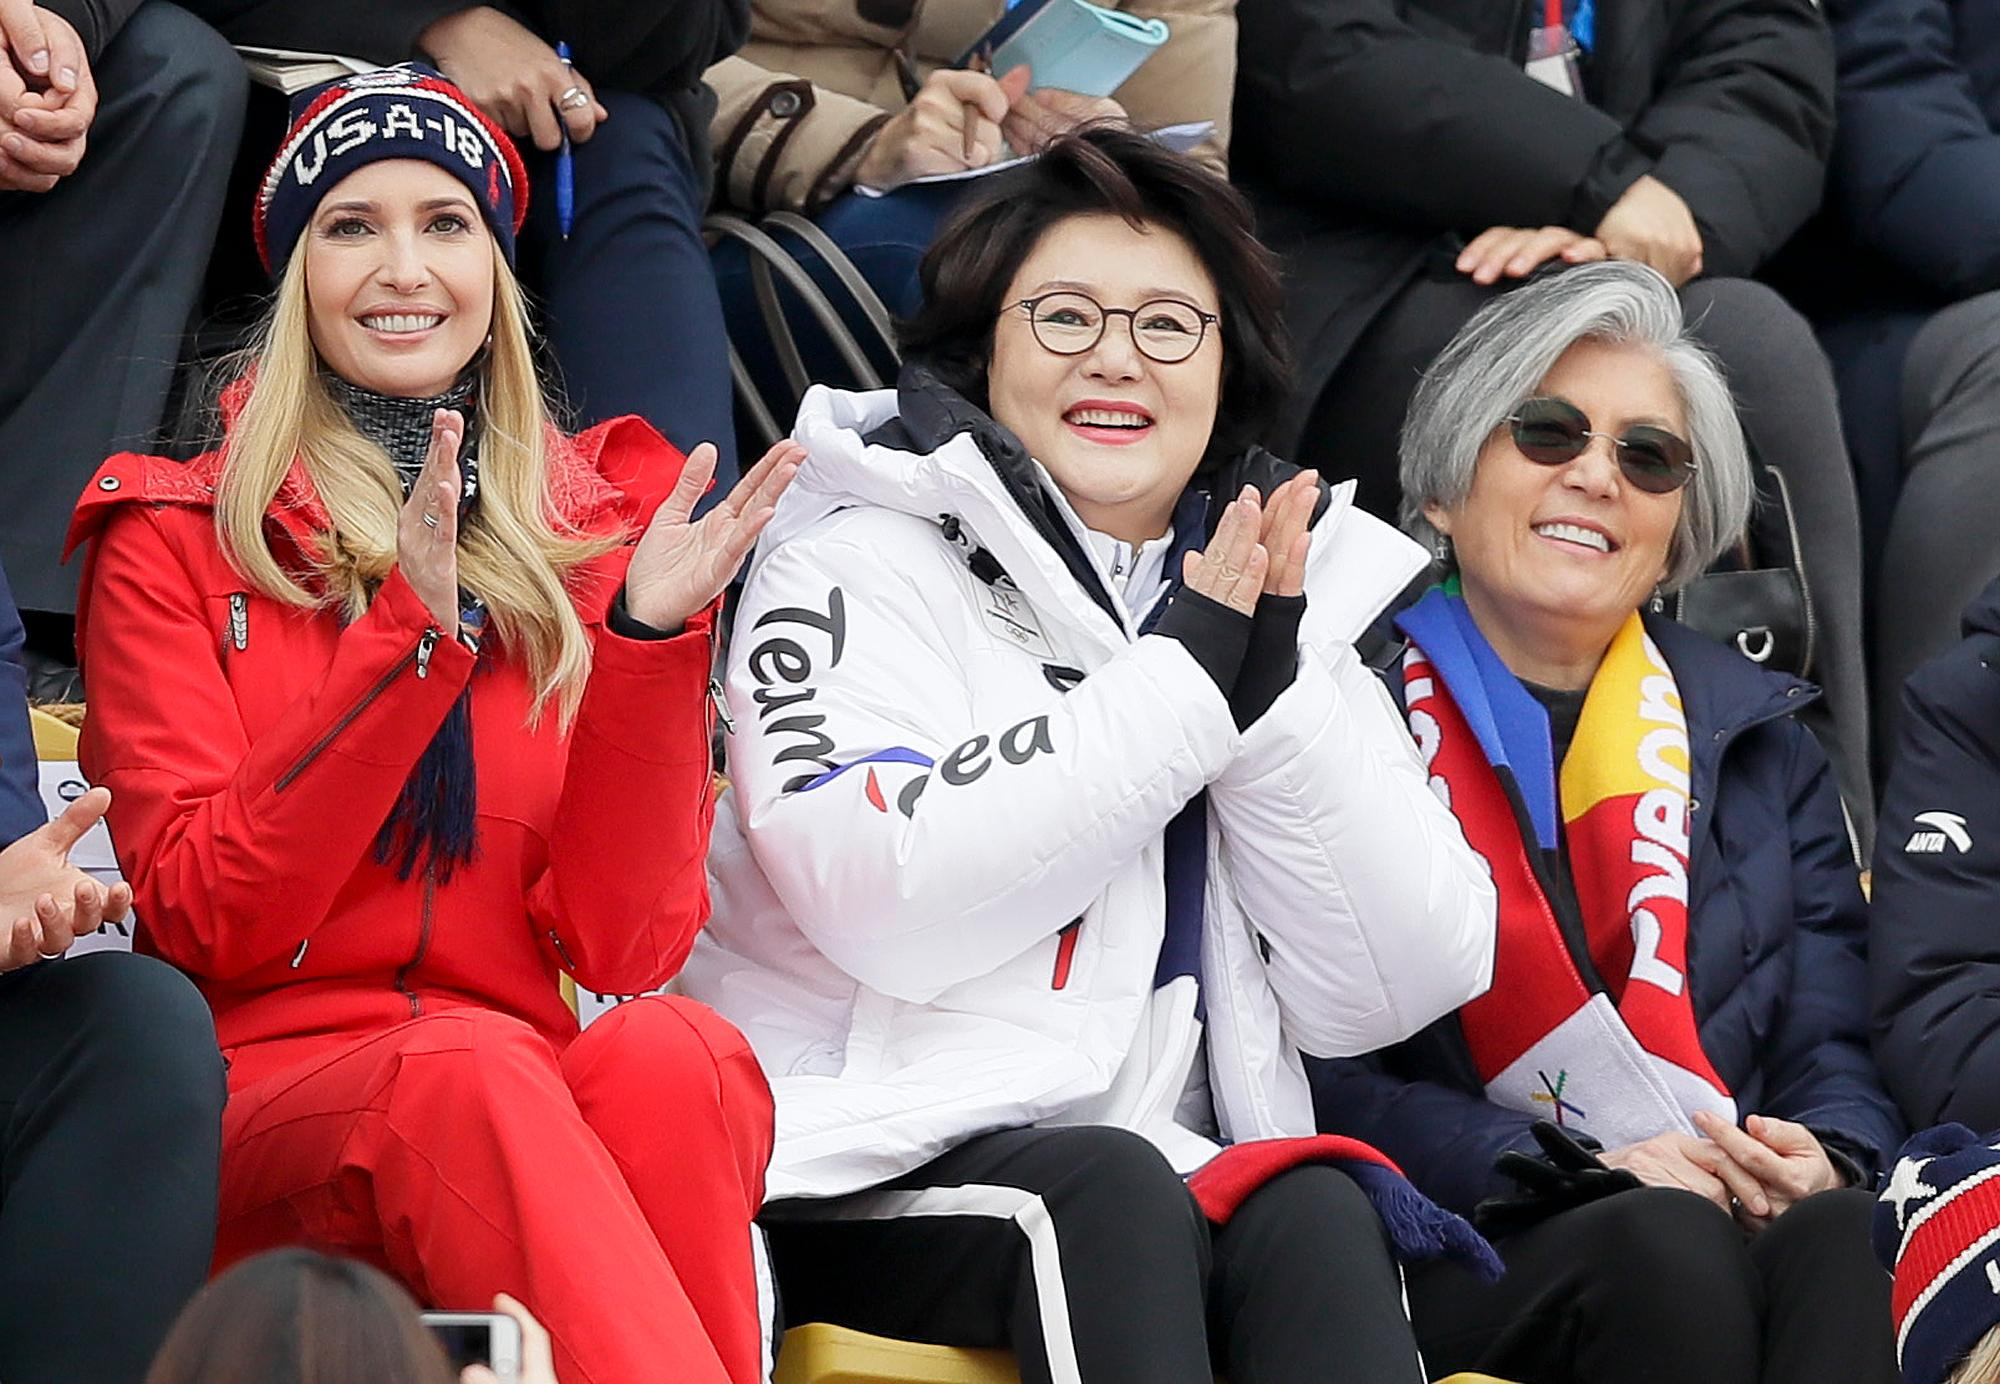 Ivanka Trump, left, sits with Kim Jung-sook, wife of the South Korean President and South Korean Foreign Minister Kang Kyung-wha, right, during the men's Big Air snowboard competition at the 2018 Winter Olympics in Pyeongchang, South Korea, Saturday, Feb. 24, 2018. (AP Photo/Kirsty Wigglesworth)